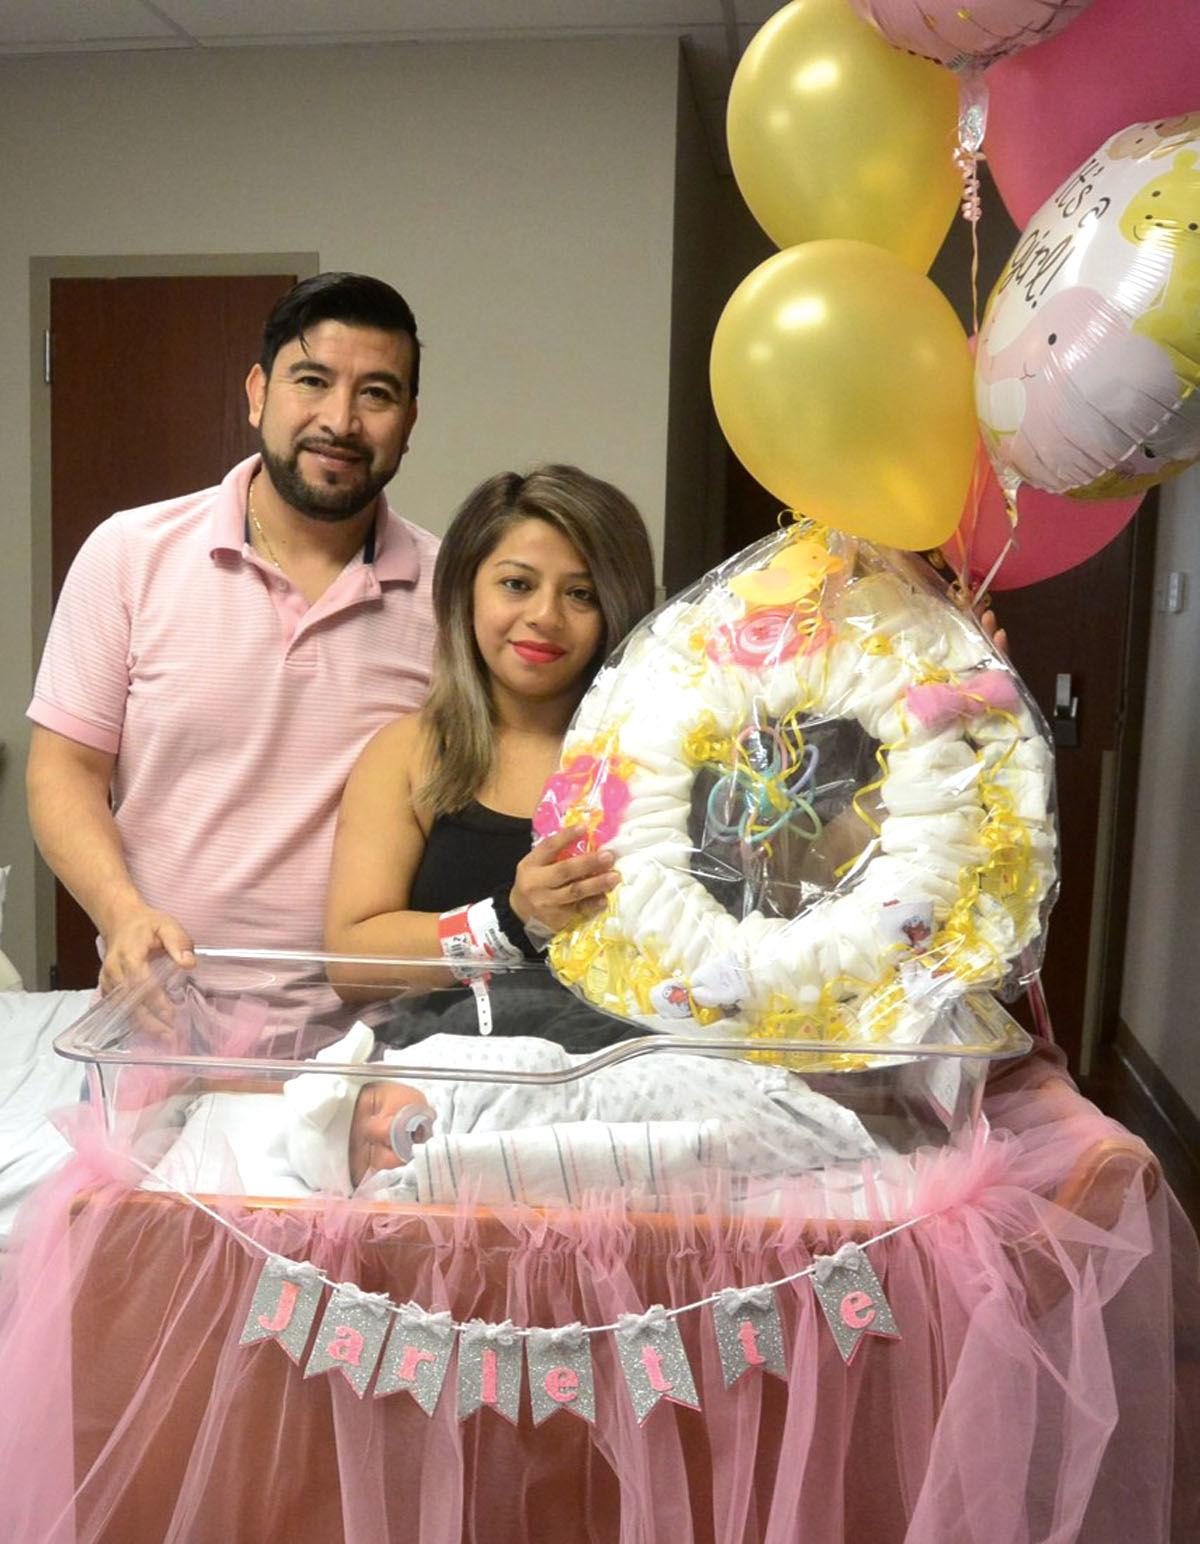 David the Fifth: Local family welcomes baby new year